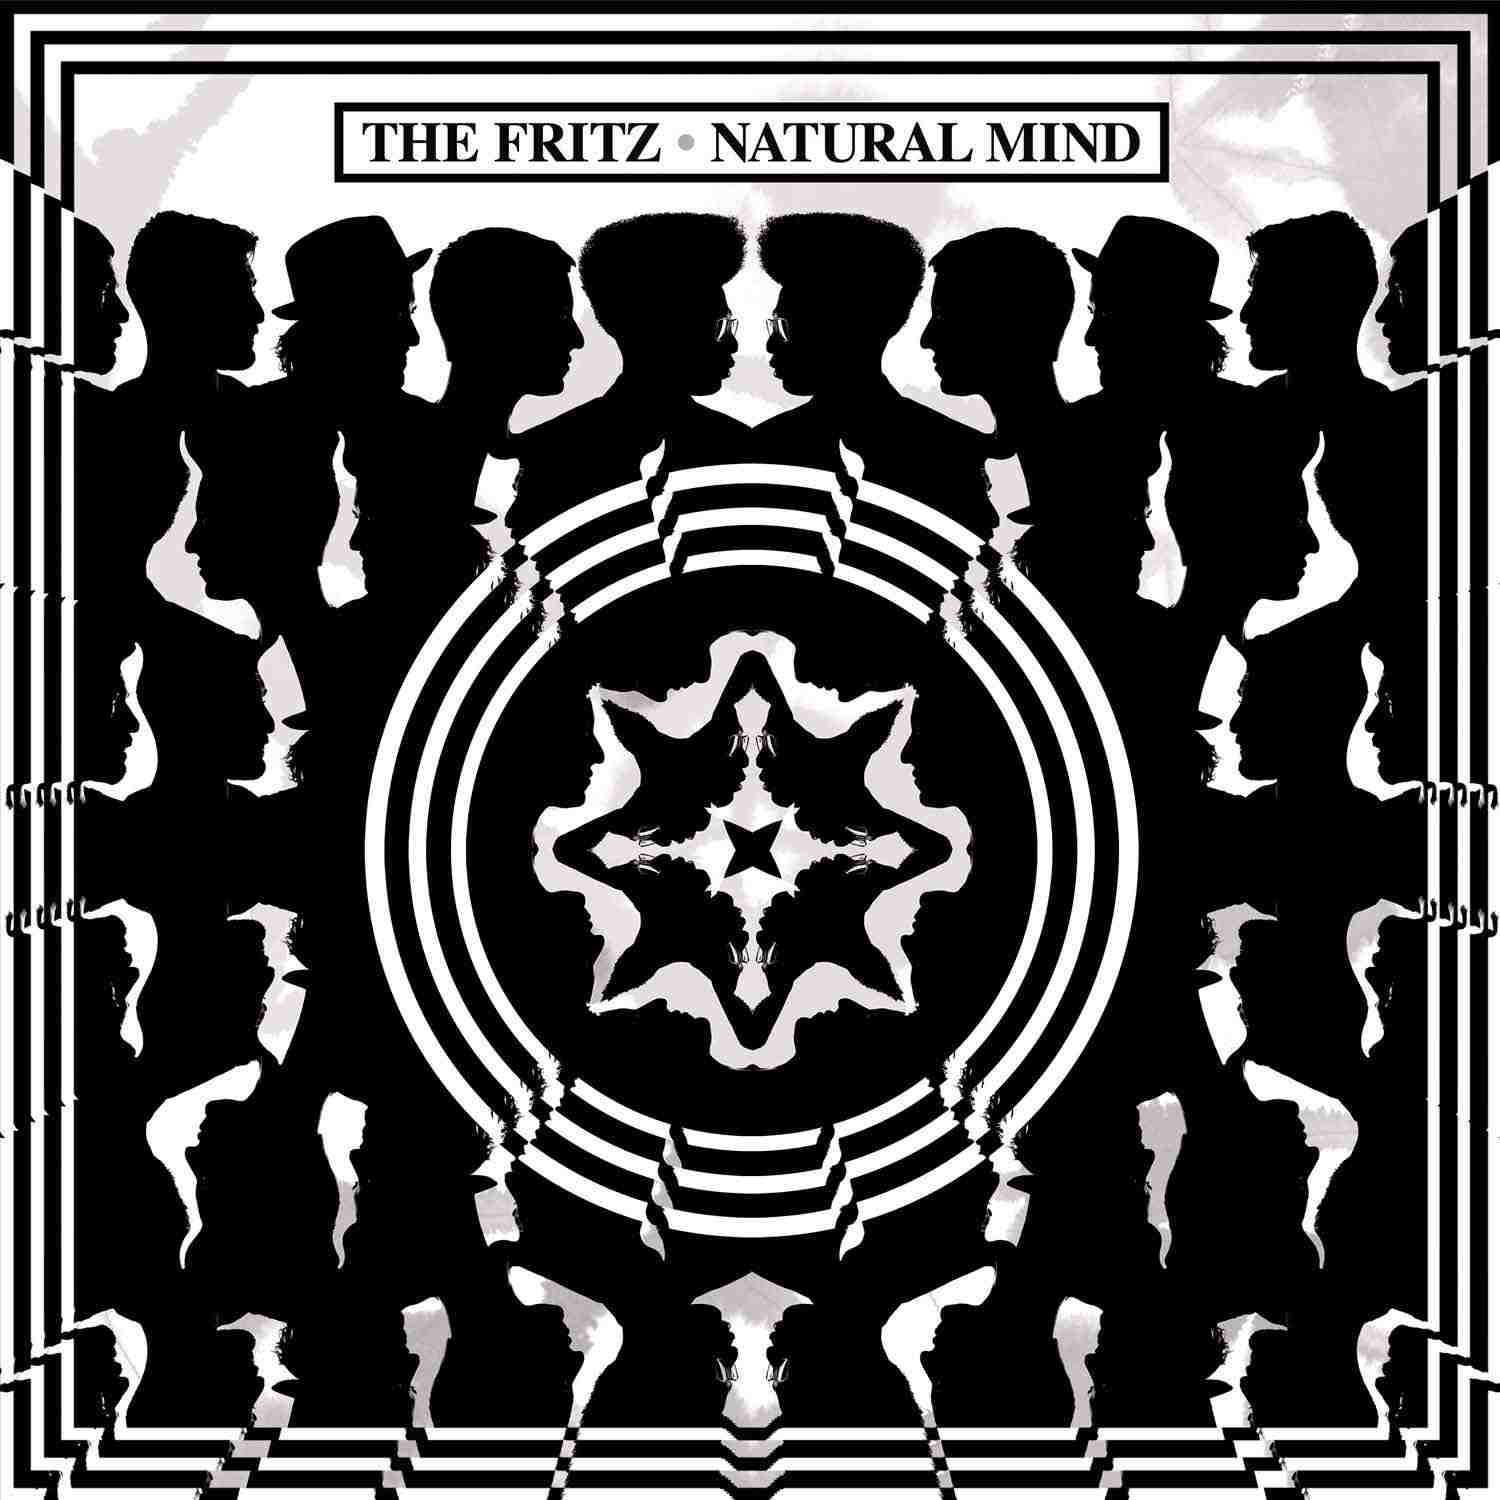 The Fritz - Natural Mind